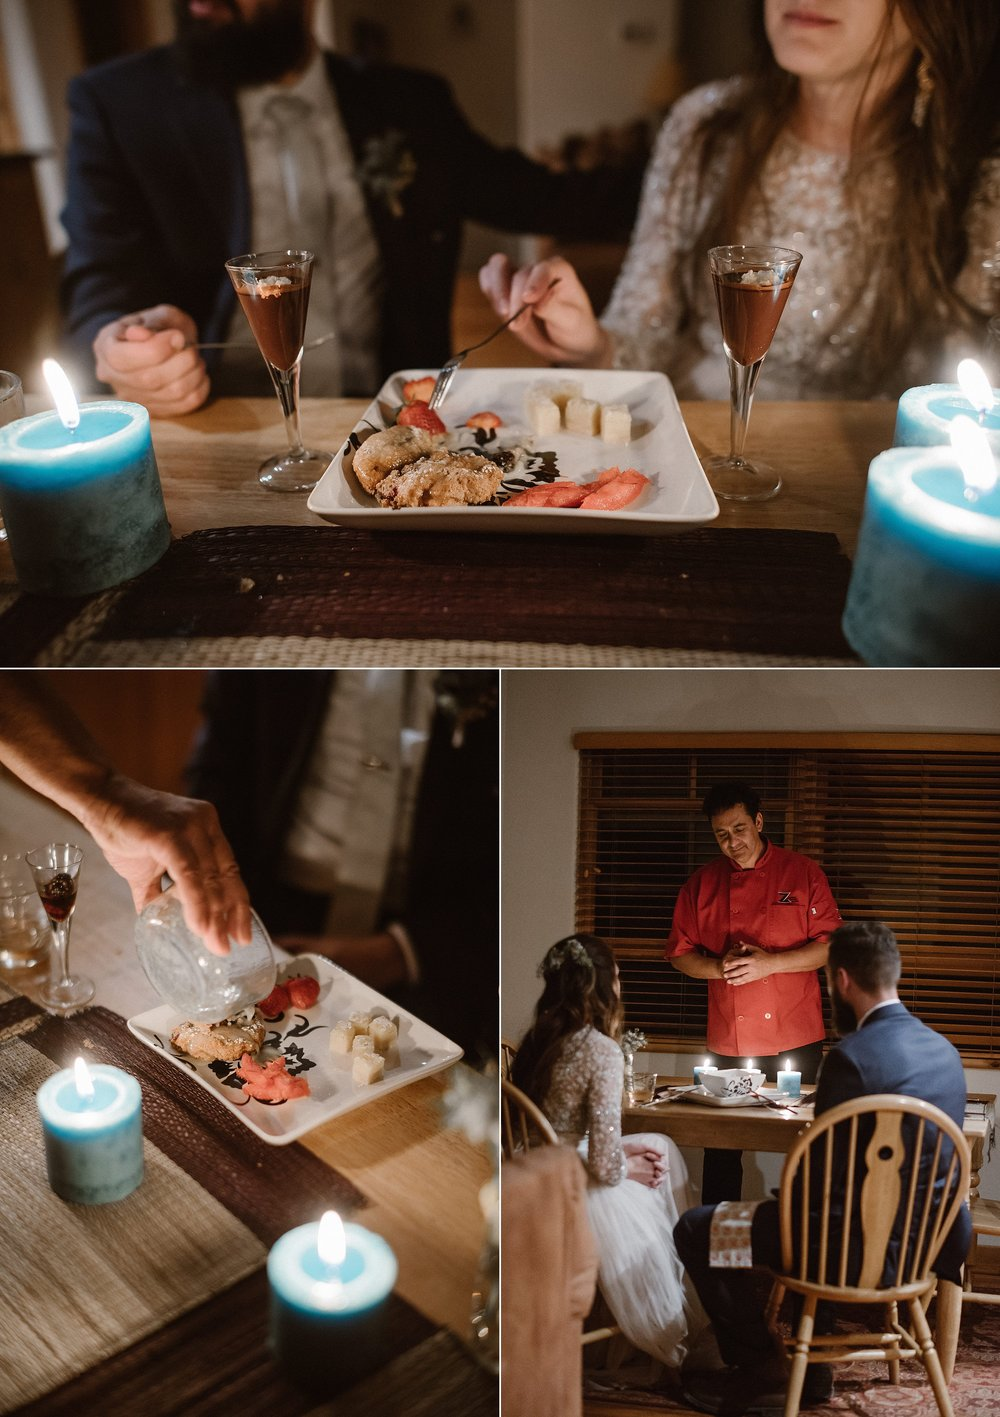 With their meal soon coming to an end, the best was saved for last - dessert! They sat in awe watching the chefs dance around the cabin kitchen creating a specialized menu just for them to celebrate their epic and adventurous elopement through the San Juan Mountains with their intimate wedding photographer Maddie Mae.